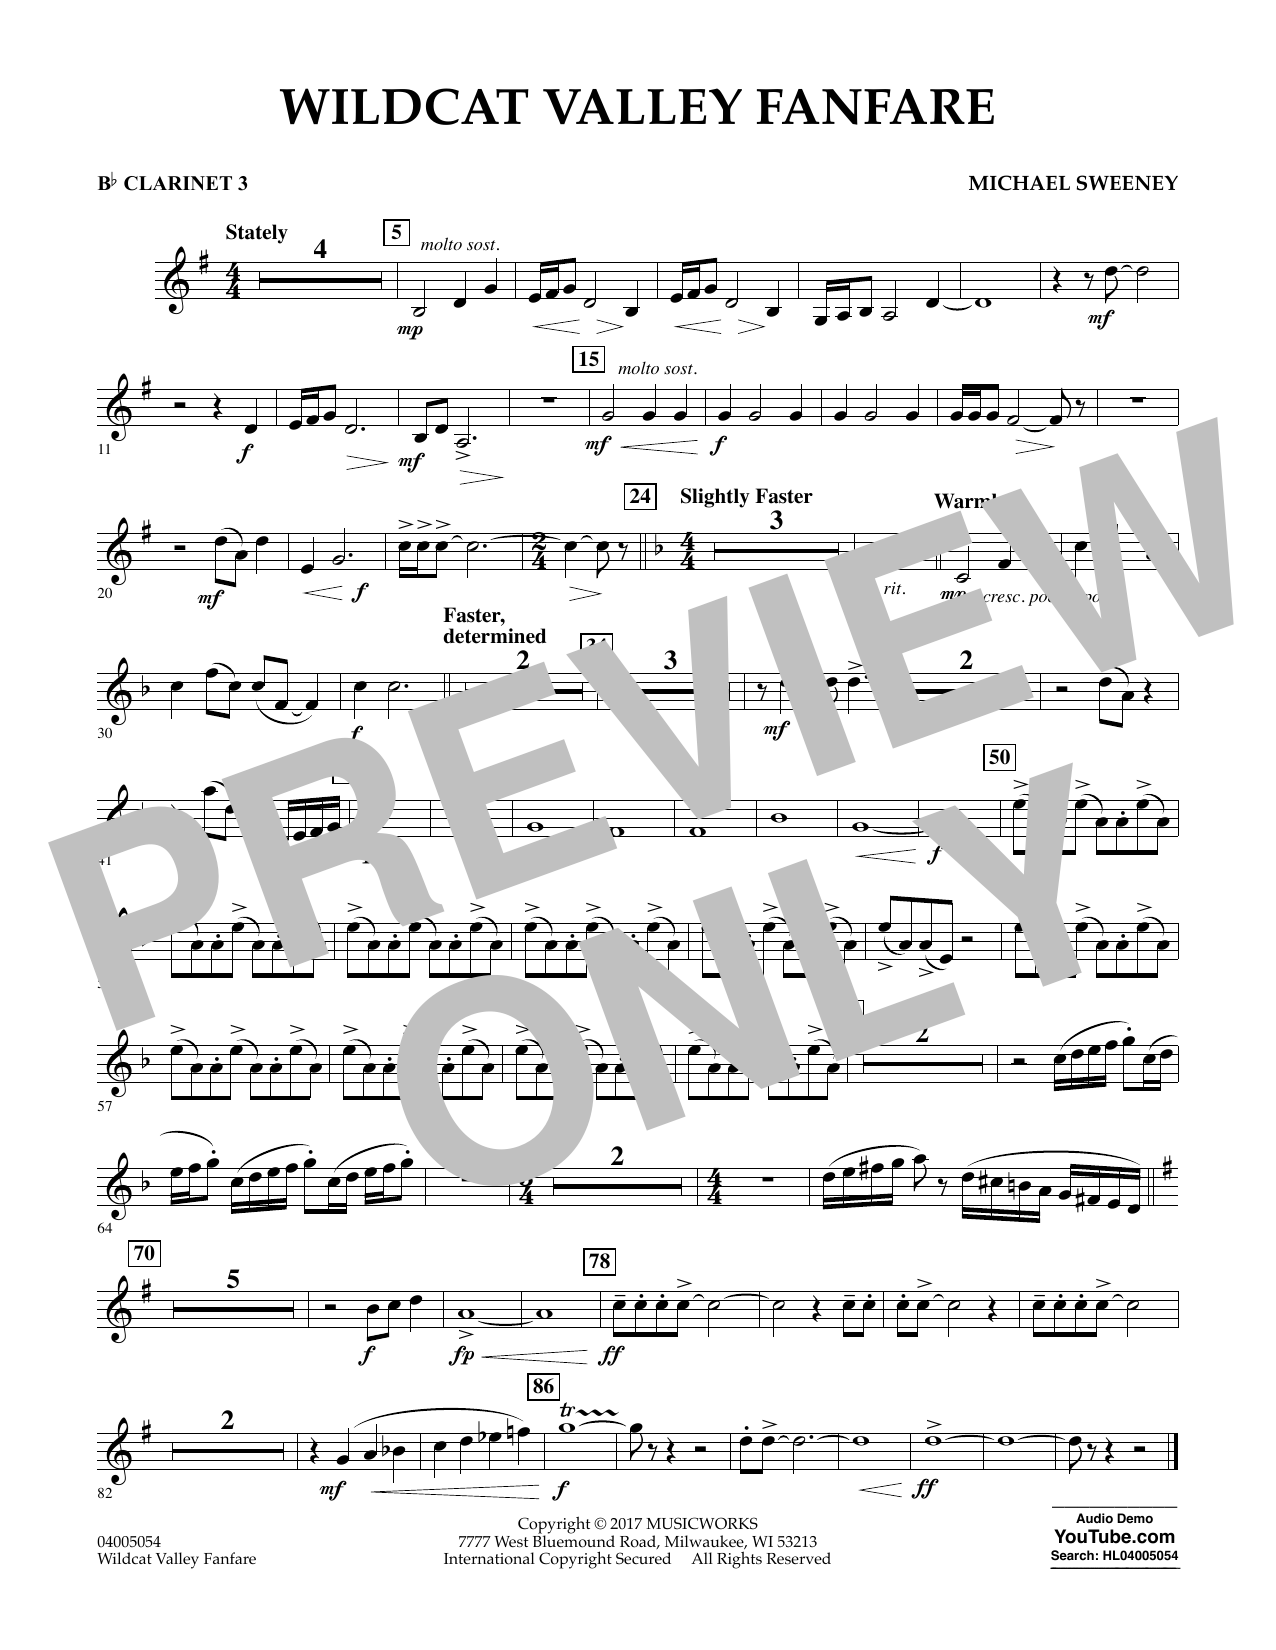 Michael Sweeney Wildcat Valley Fanfare - Bb Clarinet 3 sheet music notes and chords. Download Printable PDF.